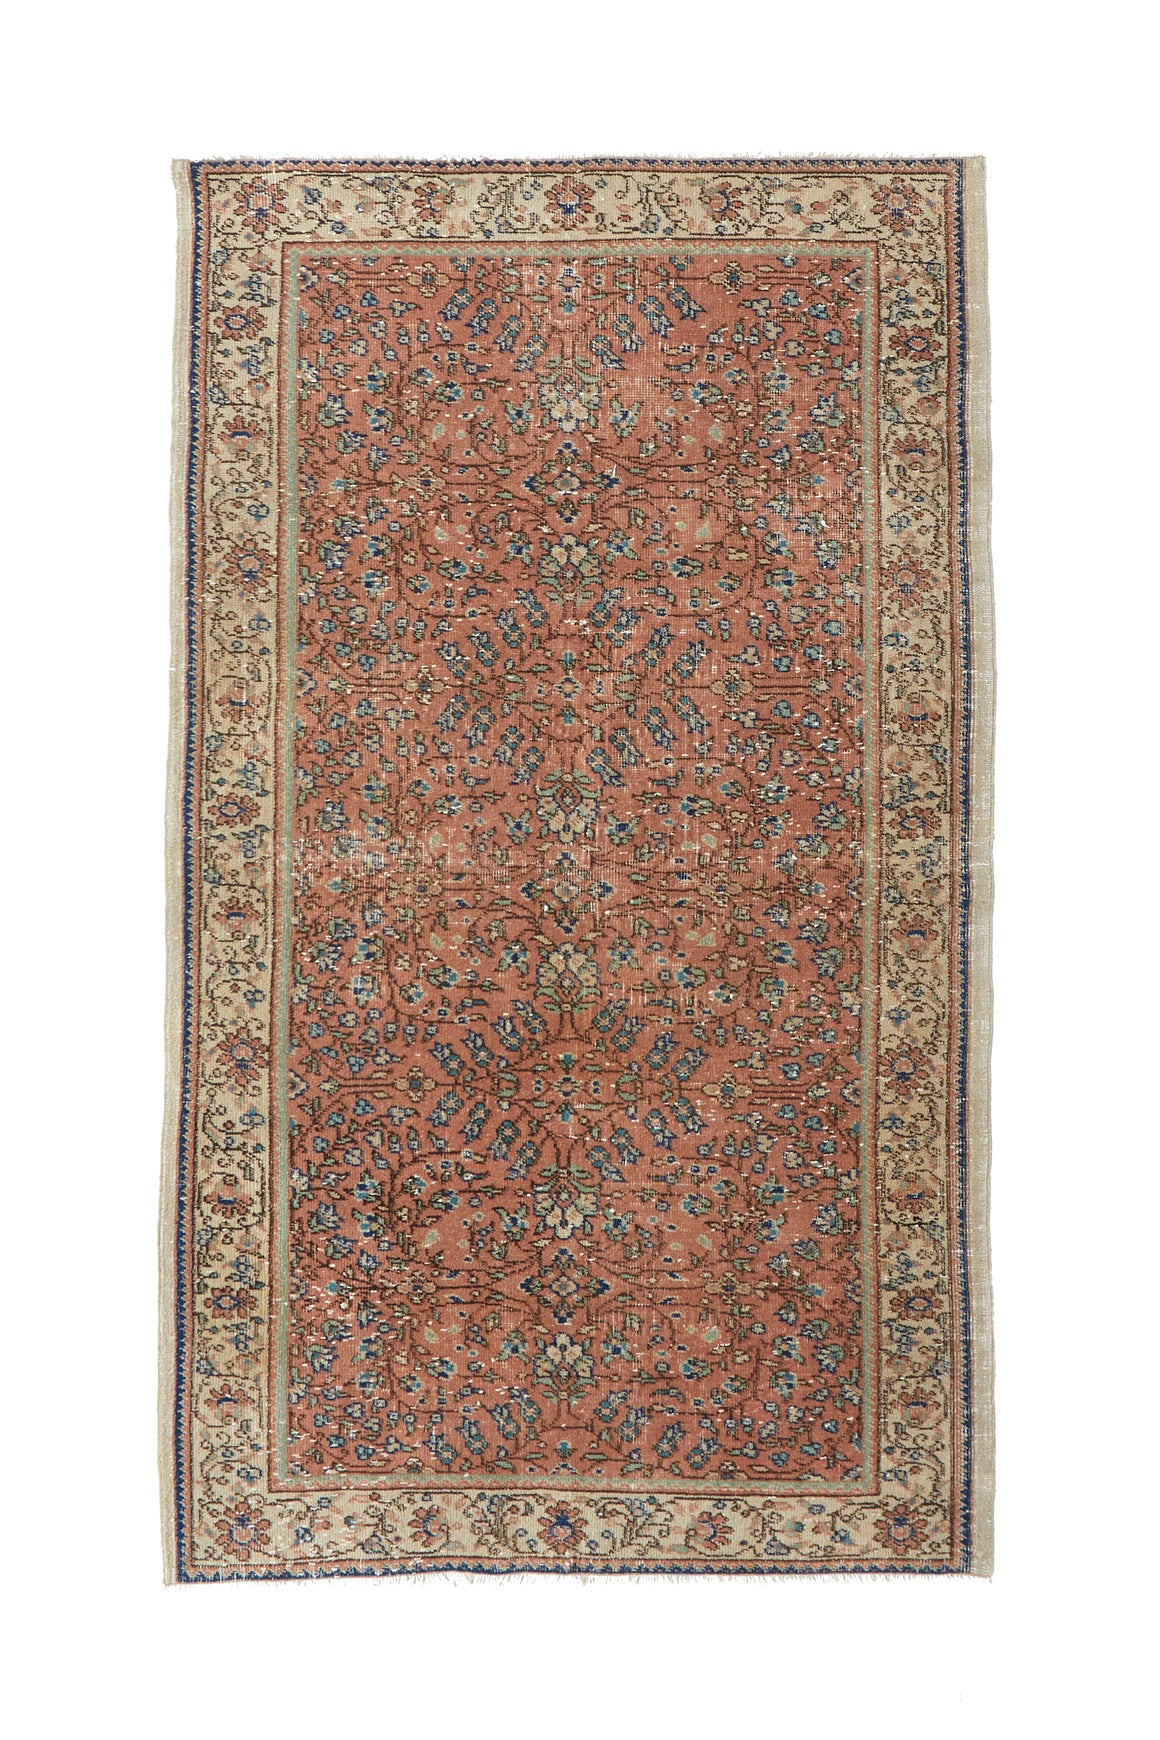 "'Sedona' Vintage Persian Rug - 3'10"" x 6'6"" - Canary Lane - Curated Textiles"